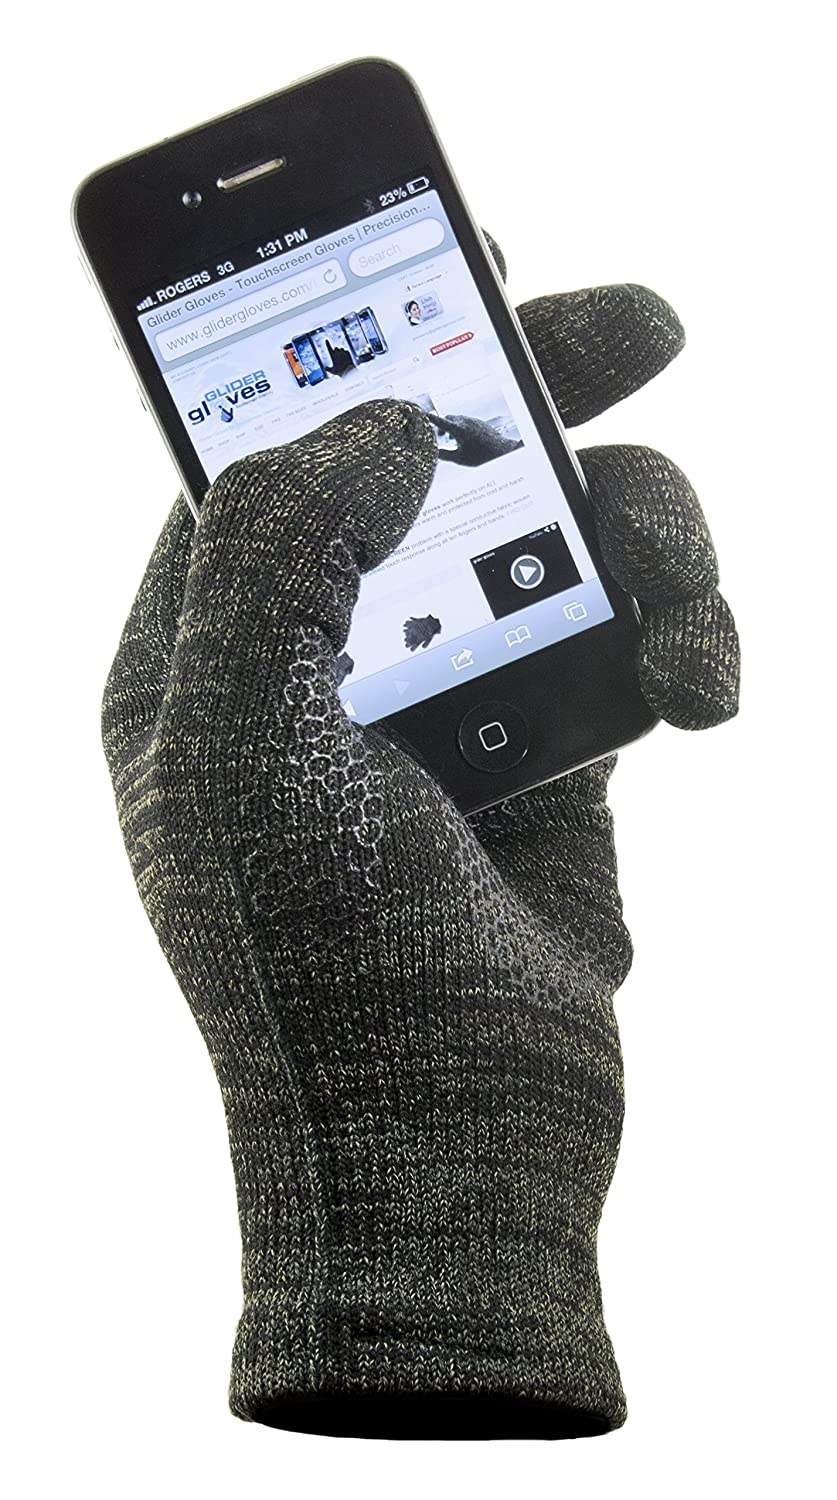 Mens gloves for smartphones - Amazon Com Gliderglove Copper Infused Touch Screen Gloves Entire Surface Works On Iphones Androids Ipads Tablets Anti Slip Palm For Driving